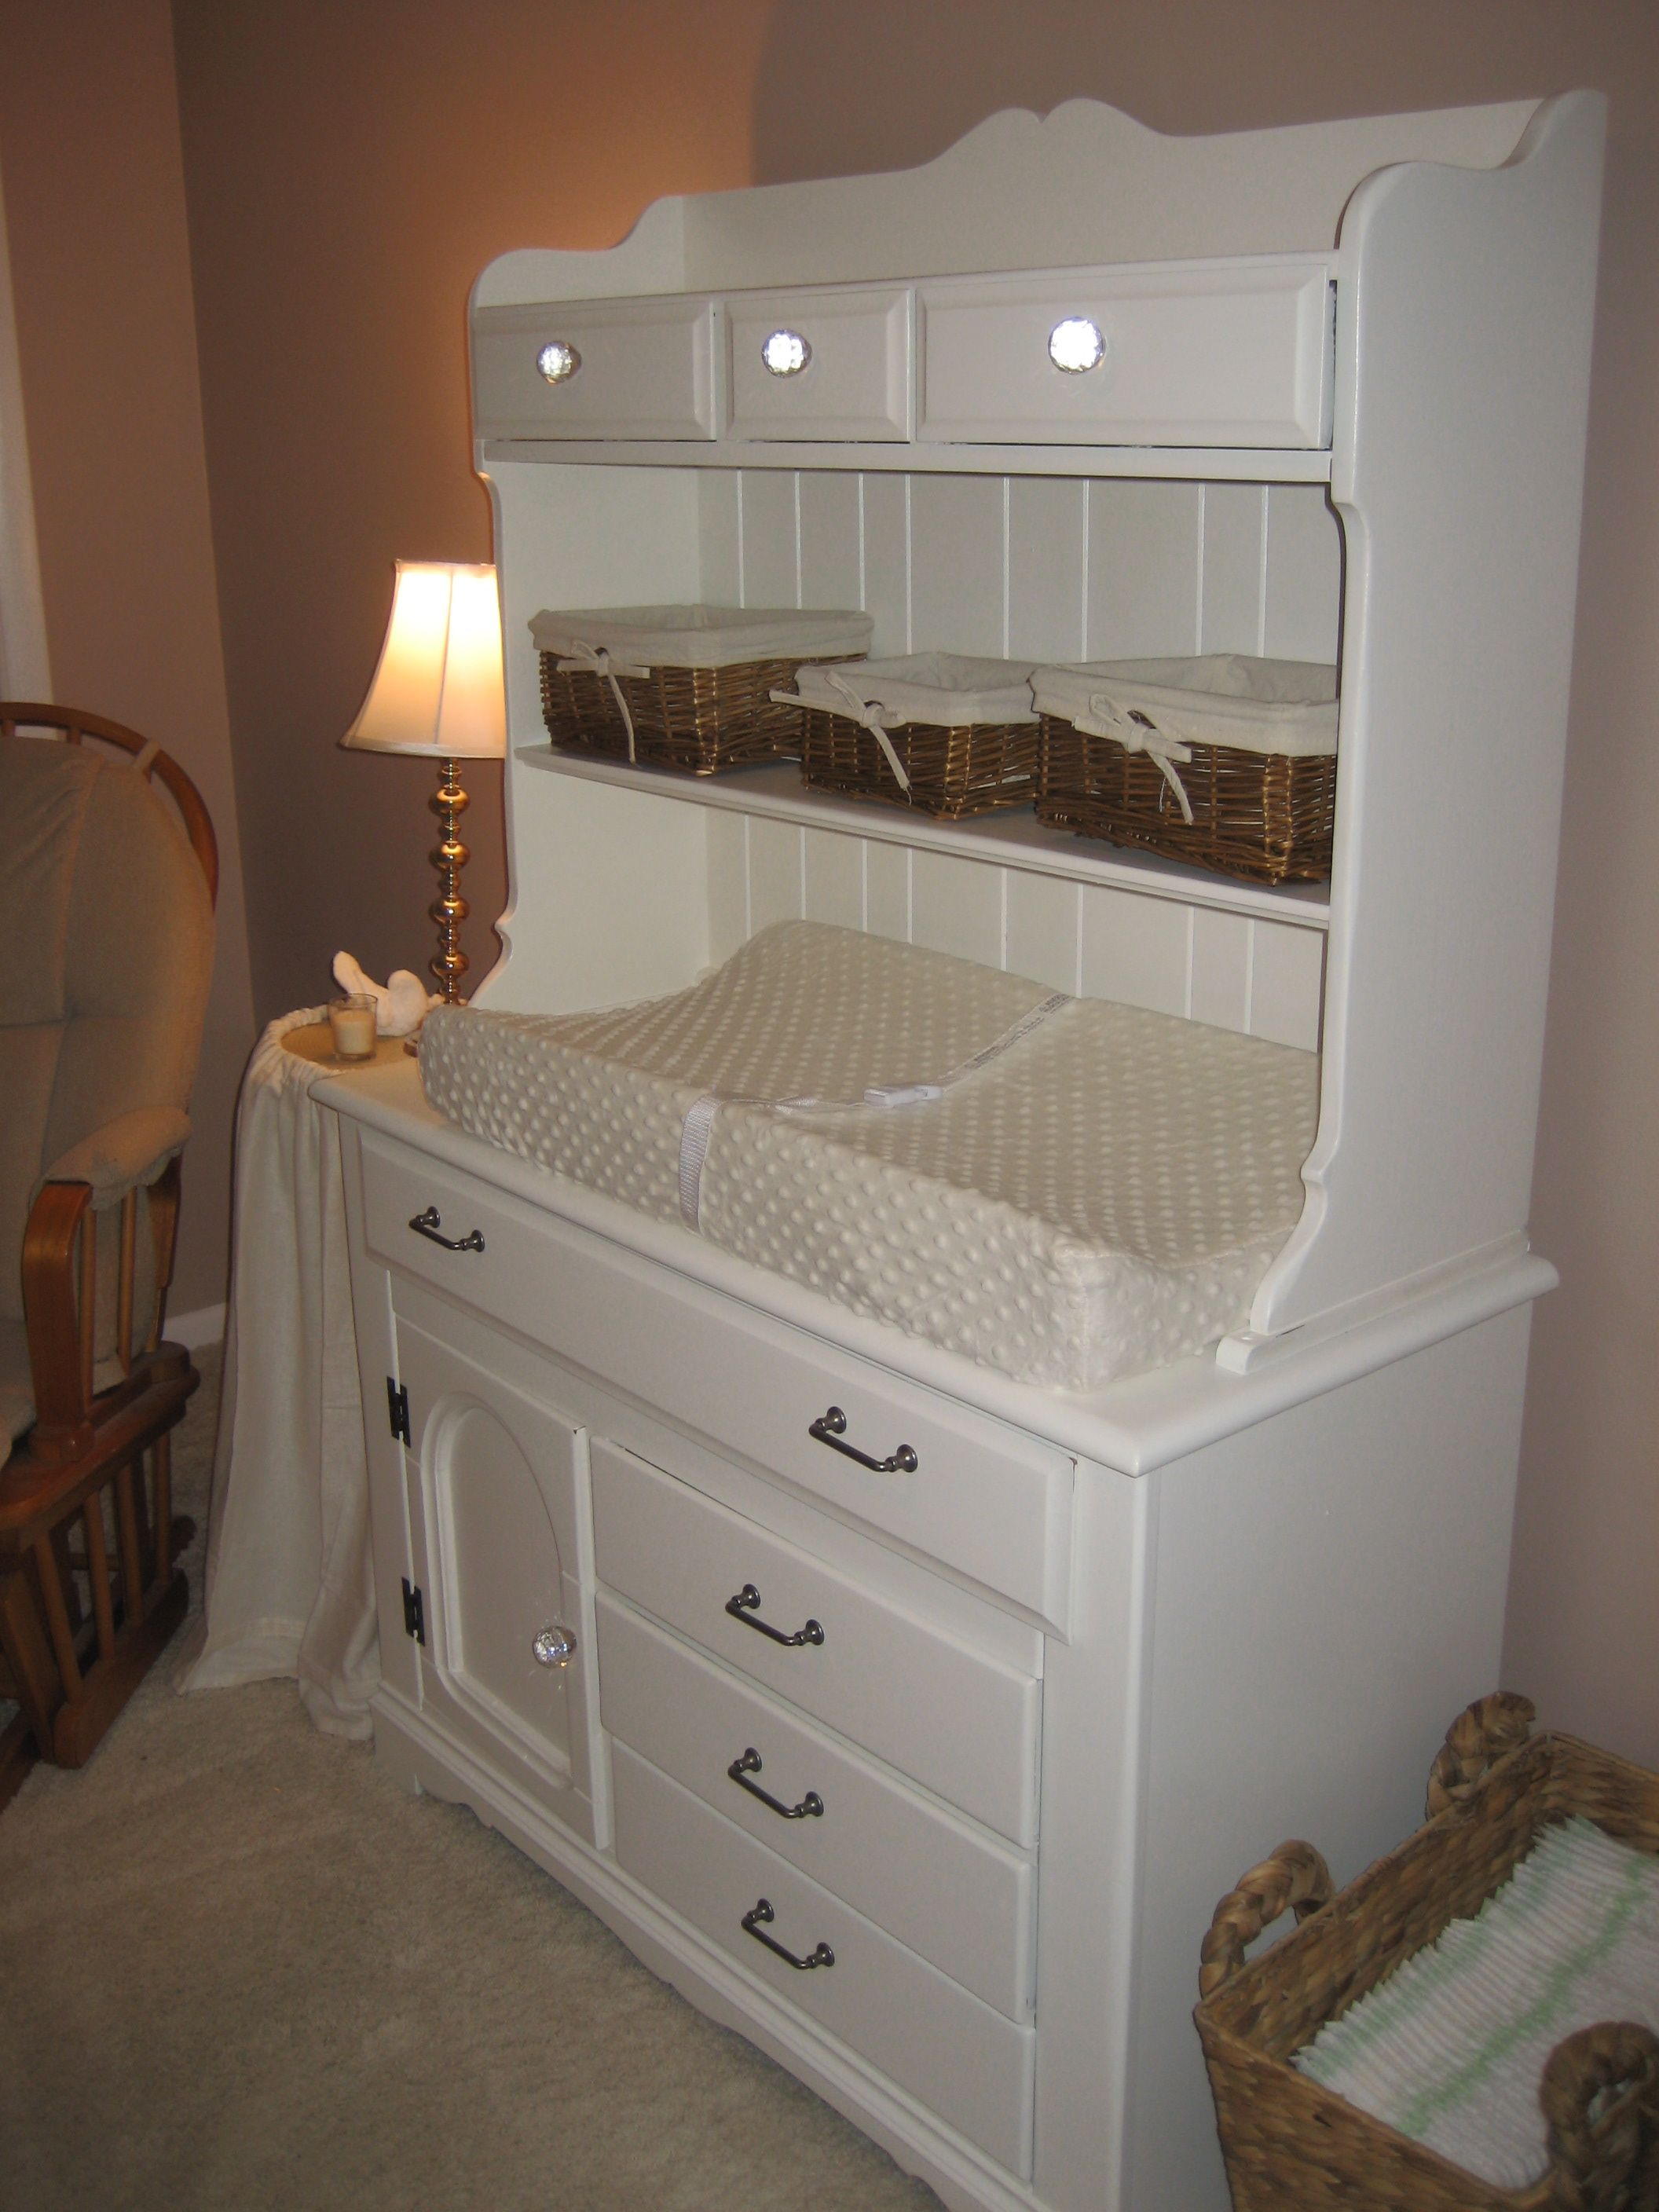 The Hutch I Refinished To Use As A Changing Table For Claireu0027s Nursery.